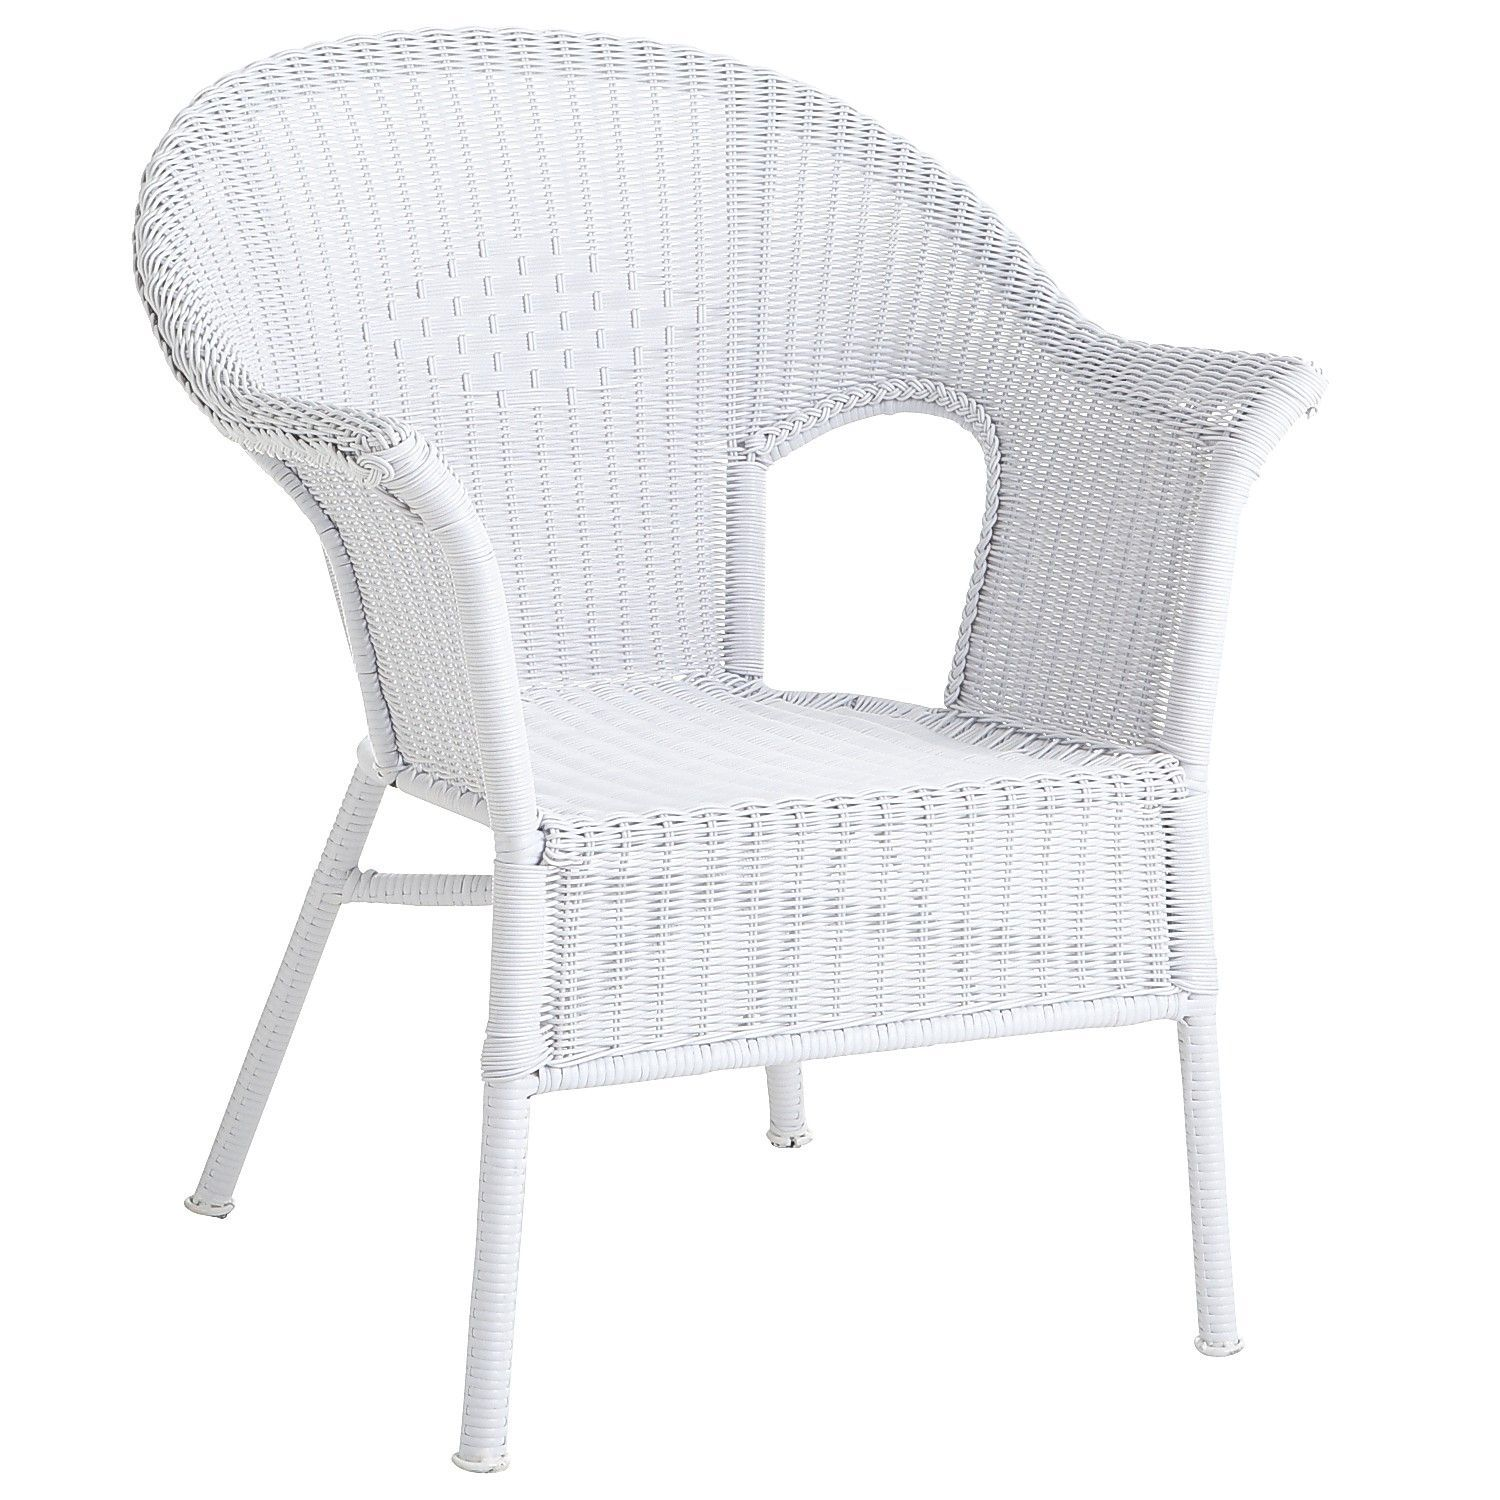 White Whicker Stacking Chairs At Pier One 90 Each Sale Price White Outdoor Furniture White Patio Furniture Outdoor Chairs White wicker chairs for sale